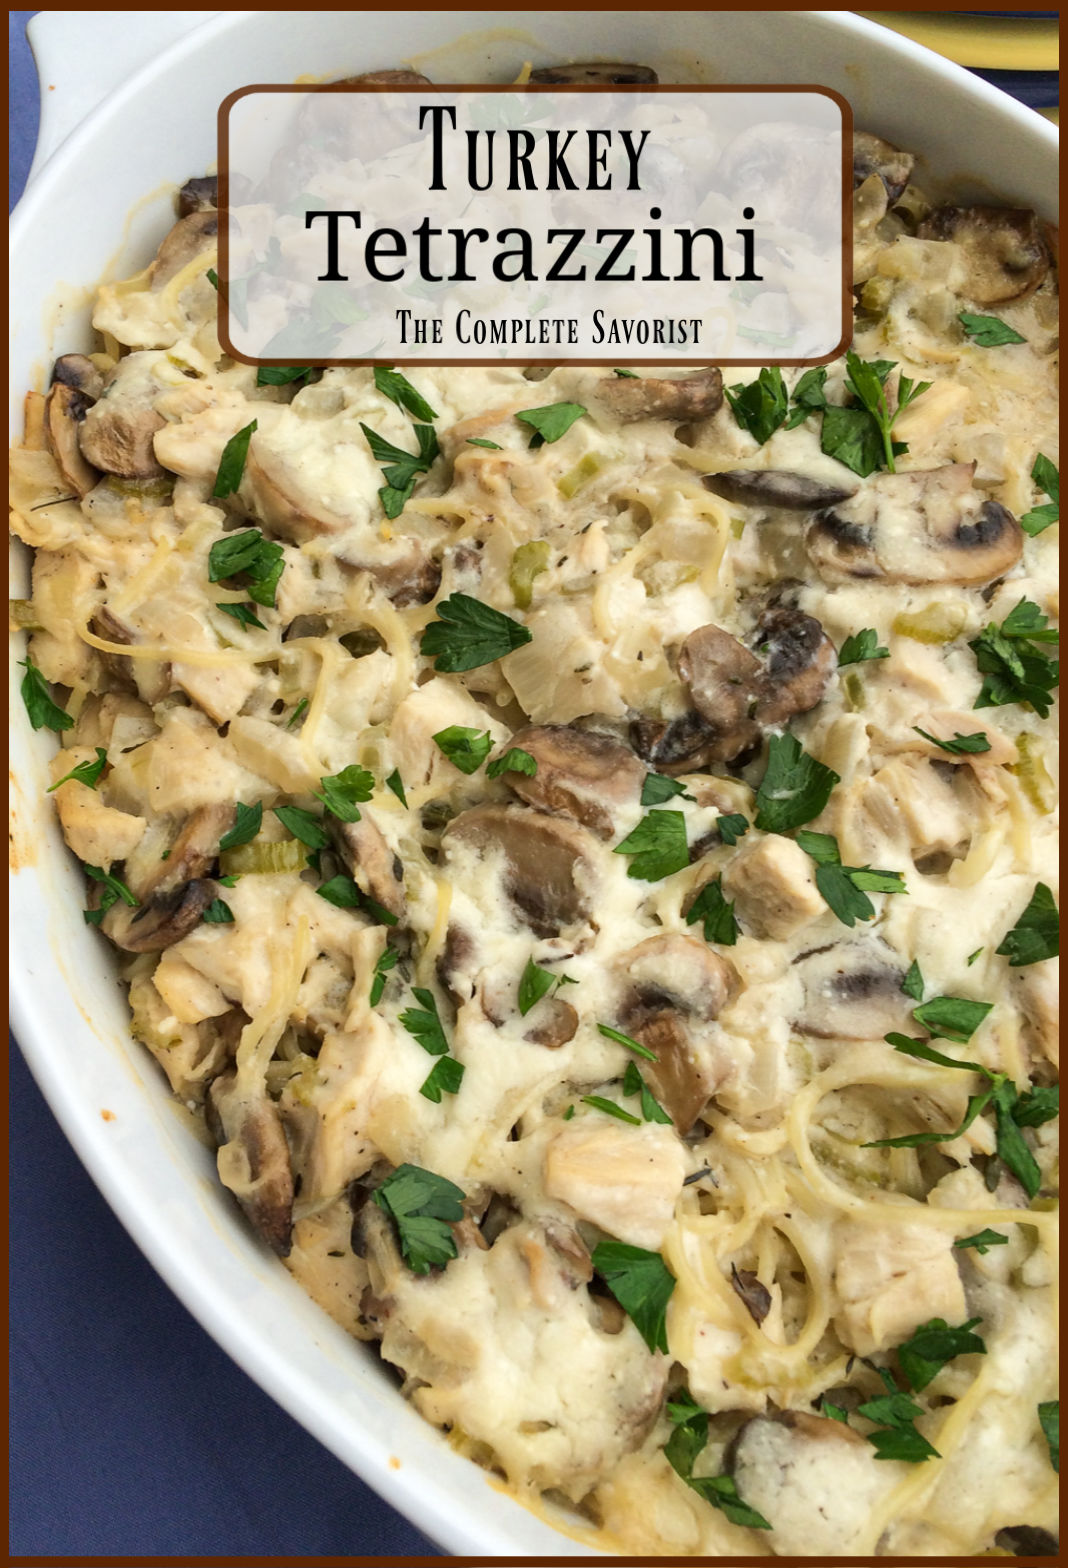 Homemade turkey tetrazzini in a white casserole, baked and garnished with fresh parsley.